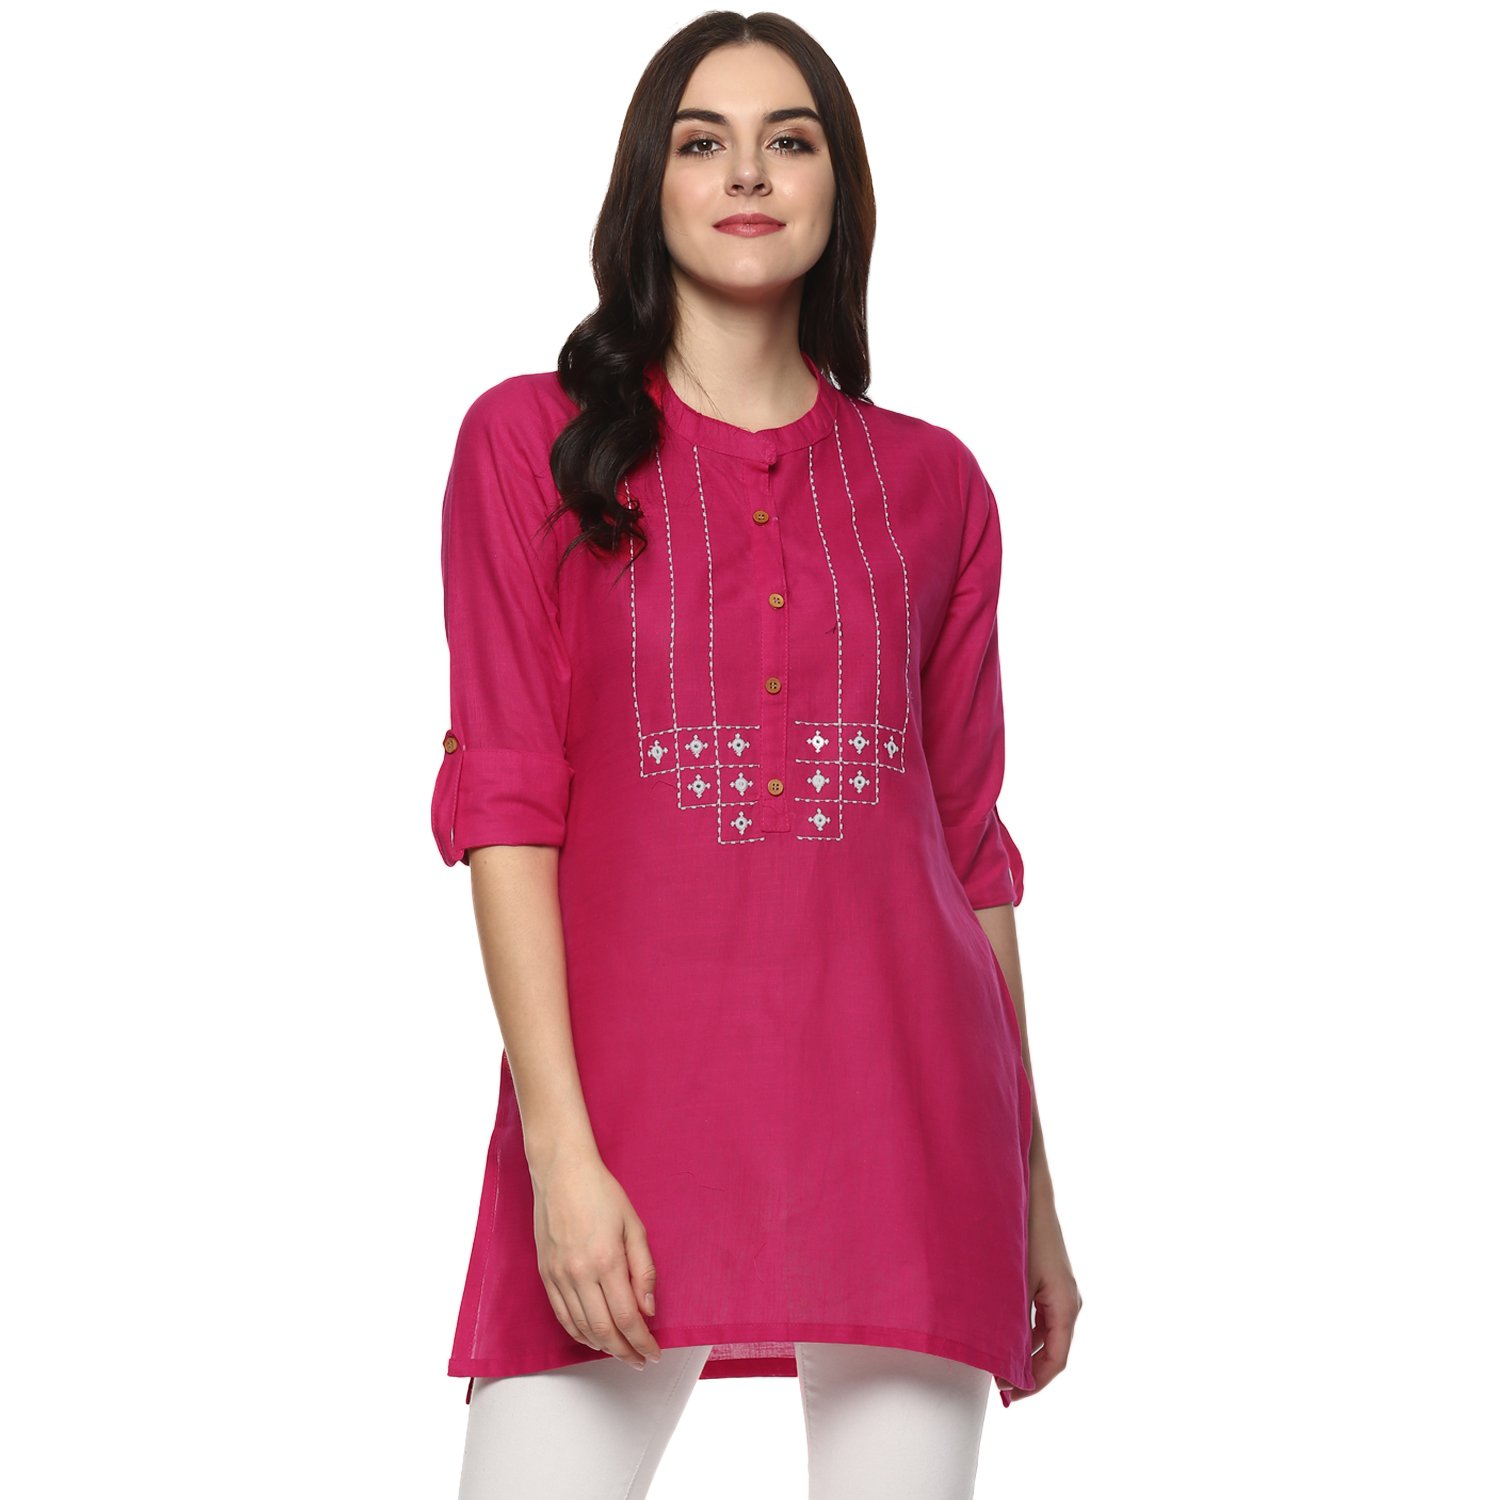 Aahwan Indian Kurtis for Women Navy Solid Cotton Short Straight Embroidered Half Sleeve Hip Long Tunic (X-Large - 42, Pink)